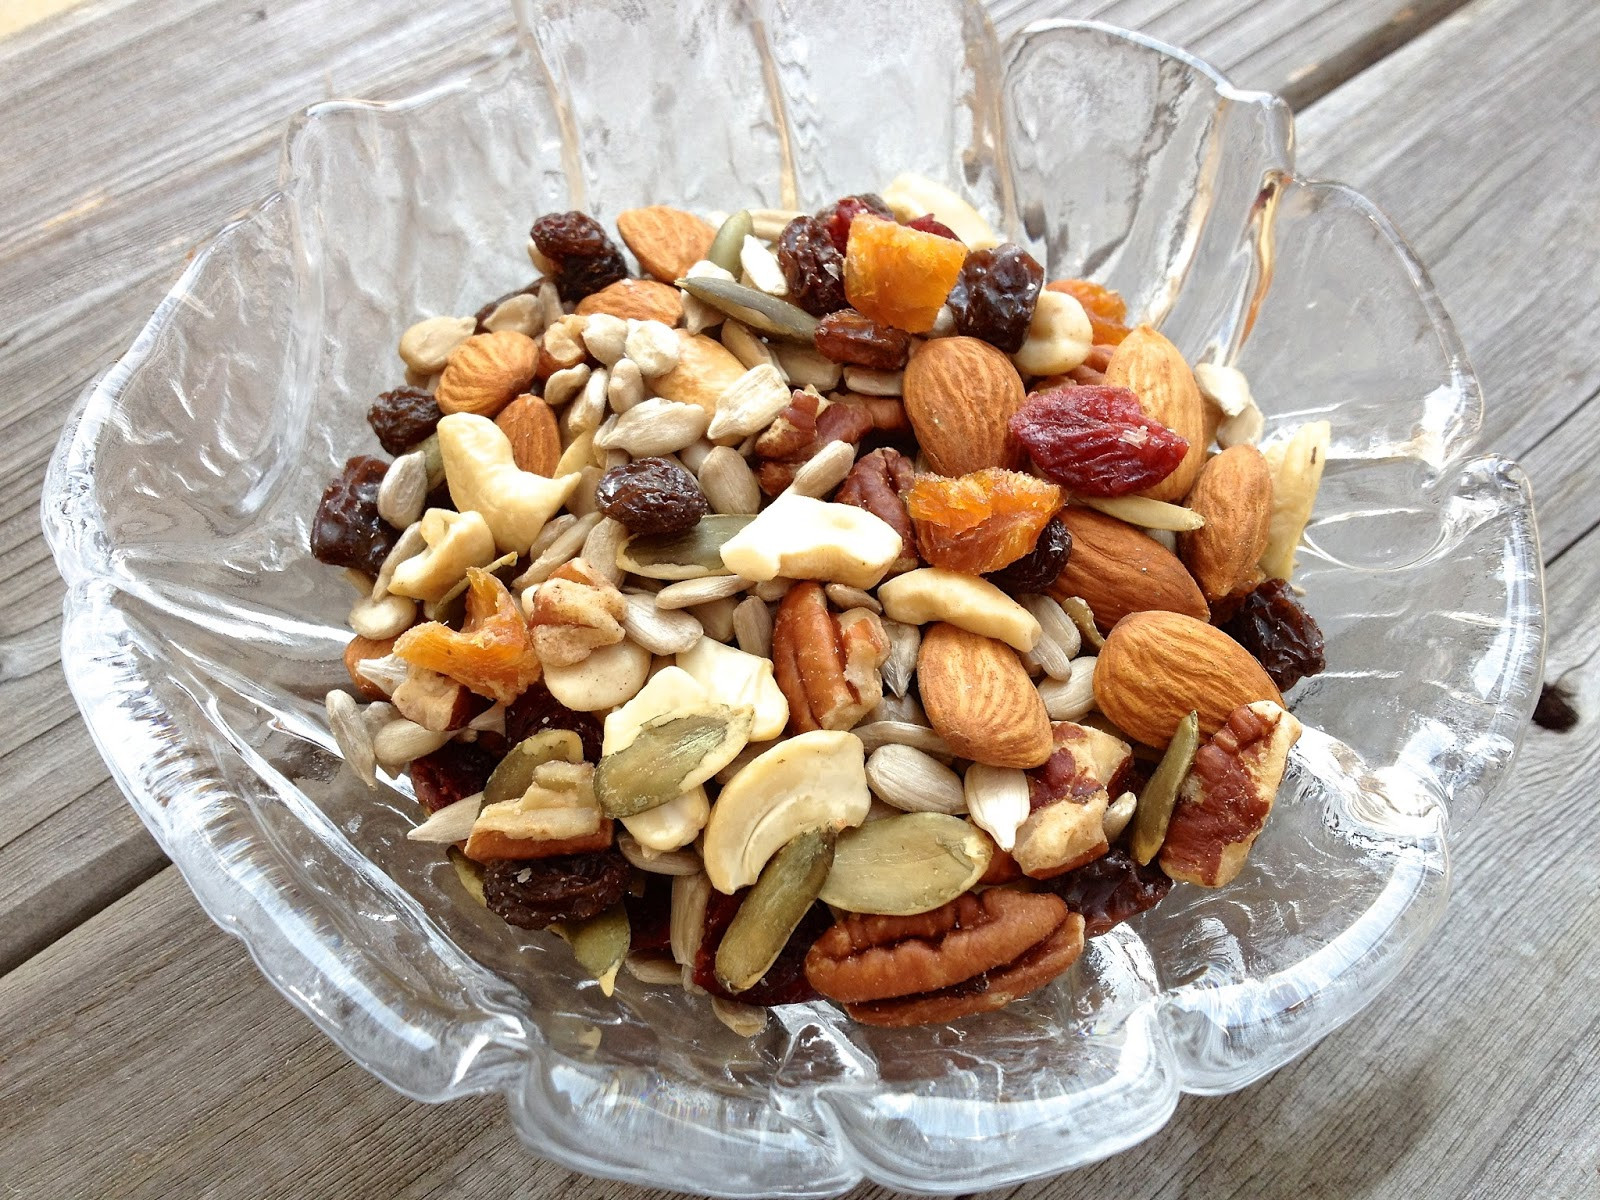 Healthy Foods and Snacks 20 Best Ideas Snack Makeover 5 Healthy and Cheap Diy Snacks